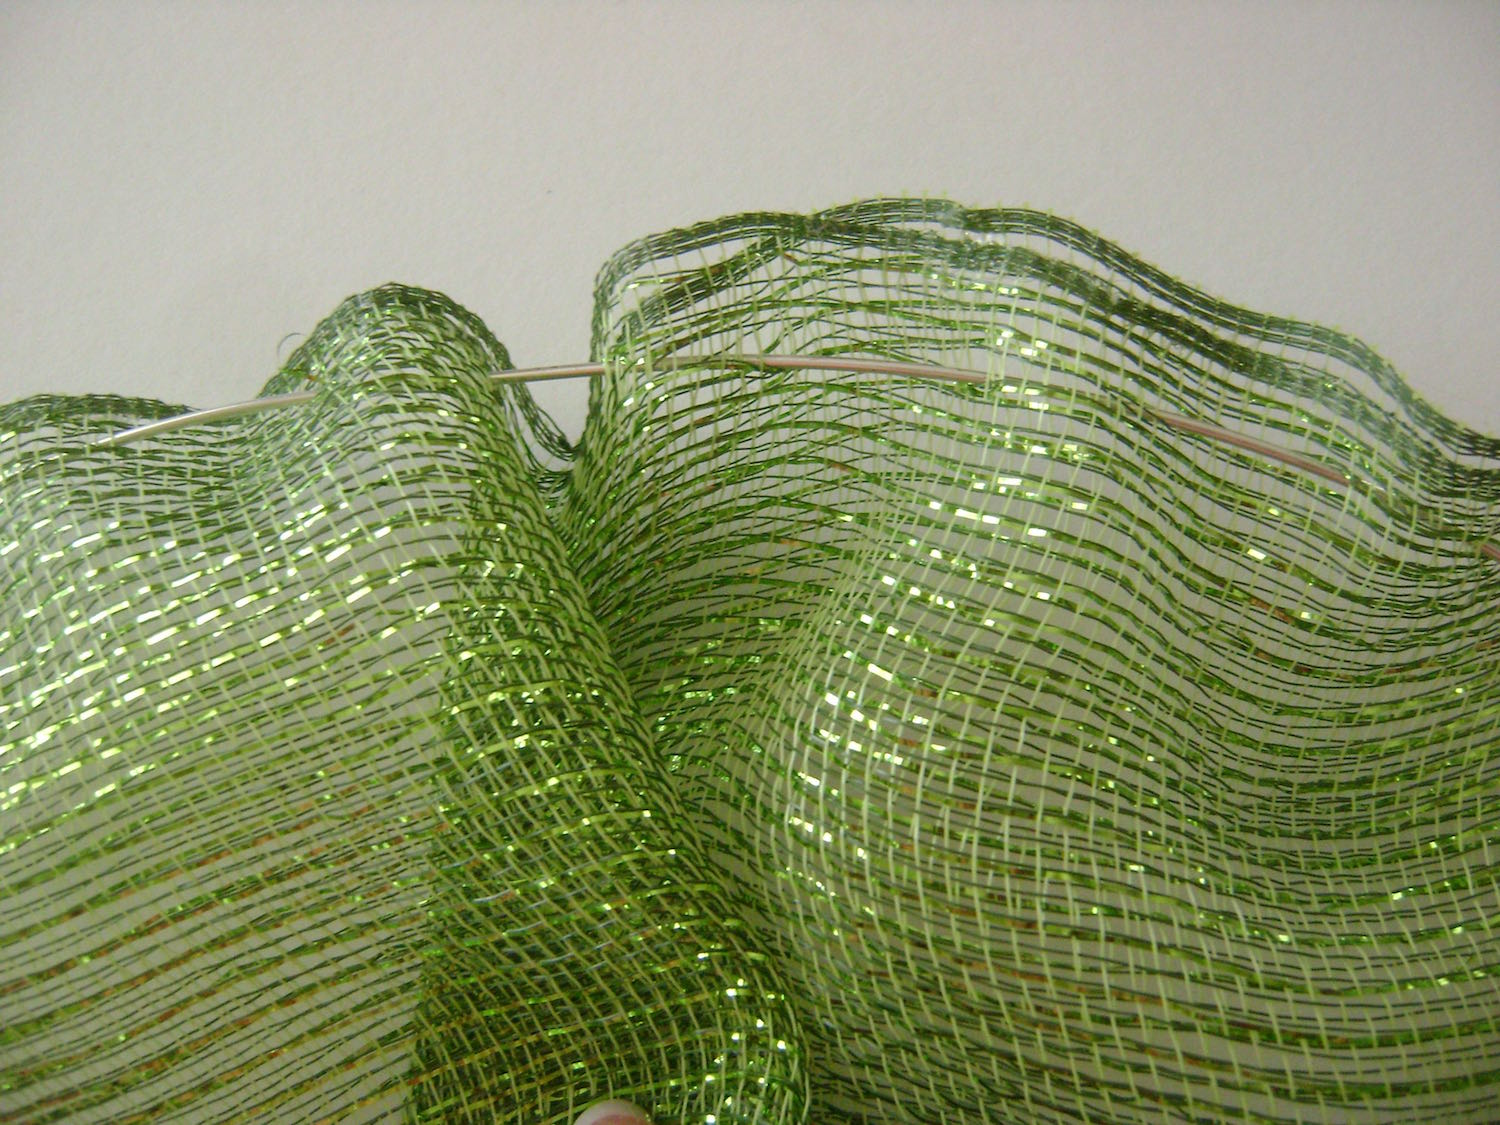 """step 5 - The Mesh Ruffle   Cut a strip of mesh 36"""" long. Fold it in half on the long side and hot glue the edges together.   Cut a length of wire 36"""" long. Slip the wire in and out of the glued side of the mesh at one inch intervals, about .50"""" from the edge."""